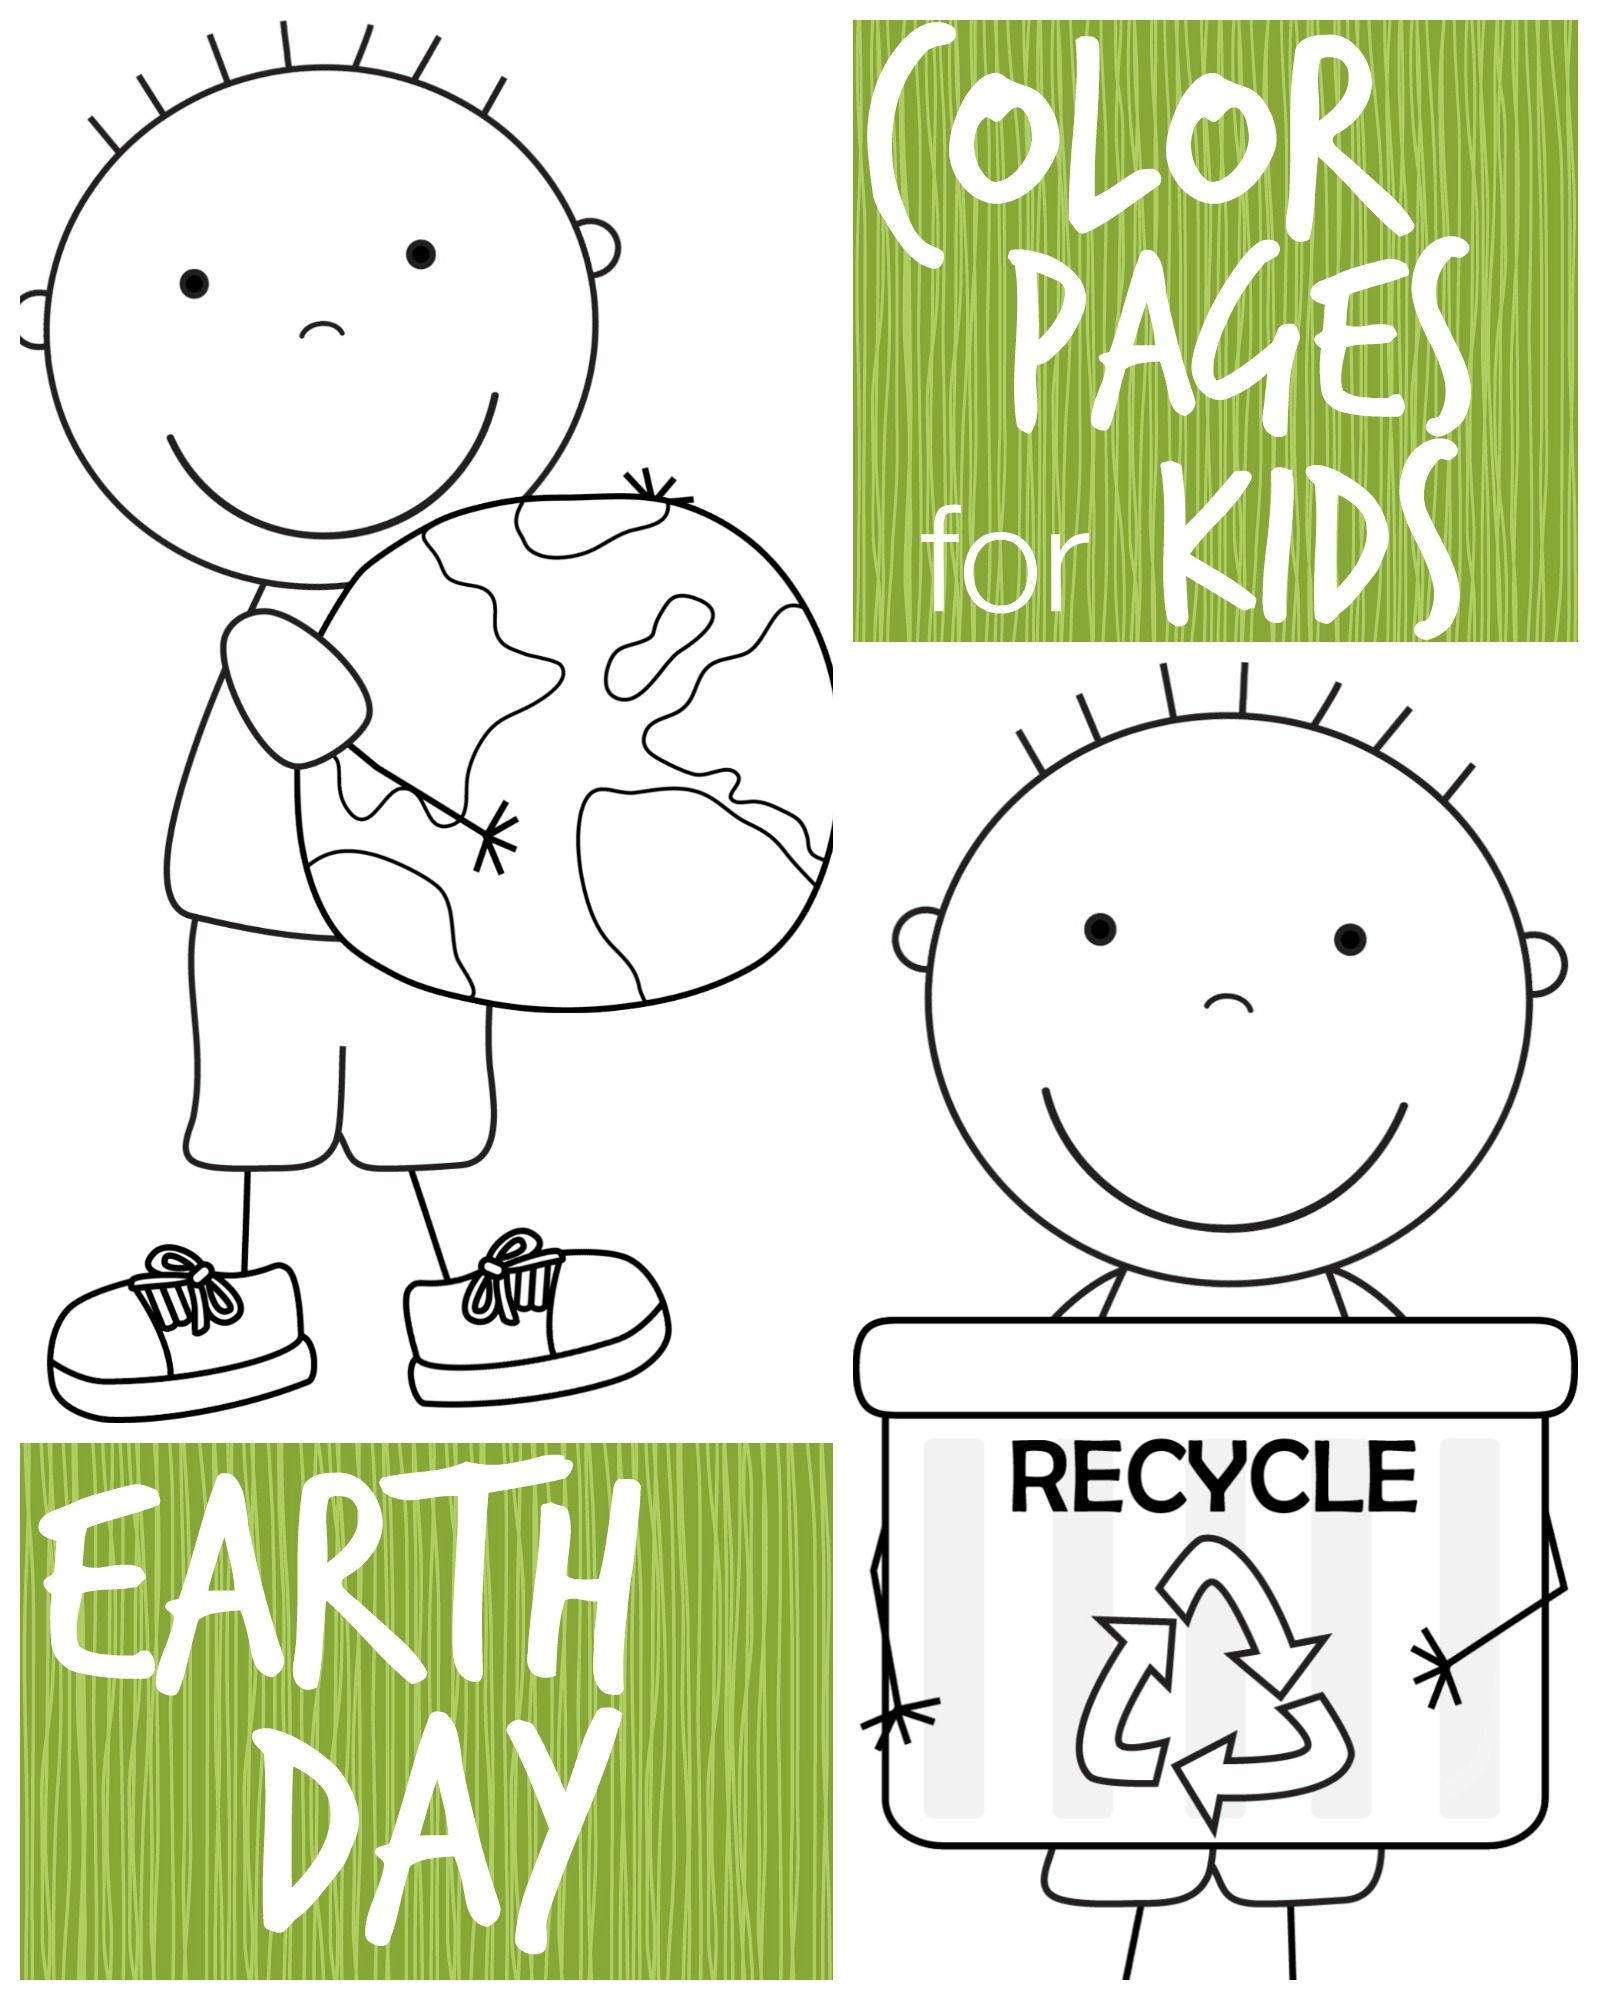 Kid Color Pages: Earth Day for Boys | Colegio | Pinterest